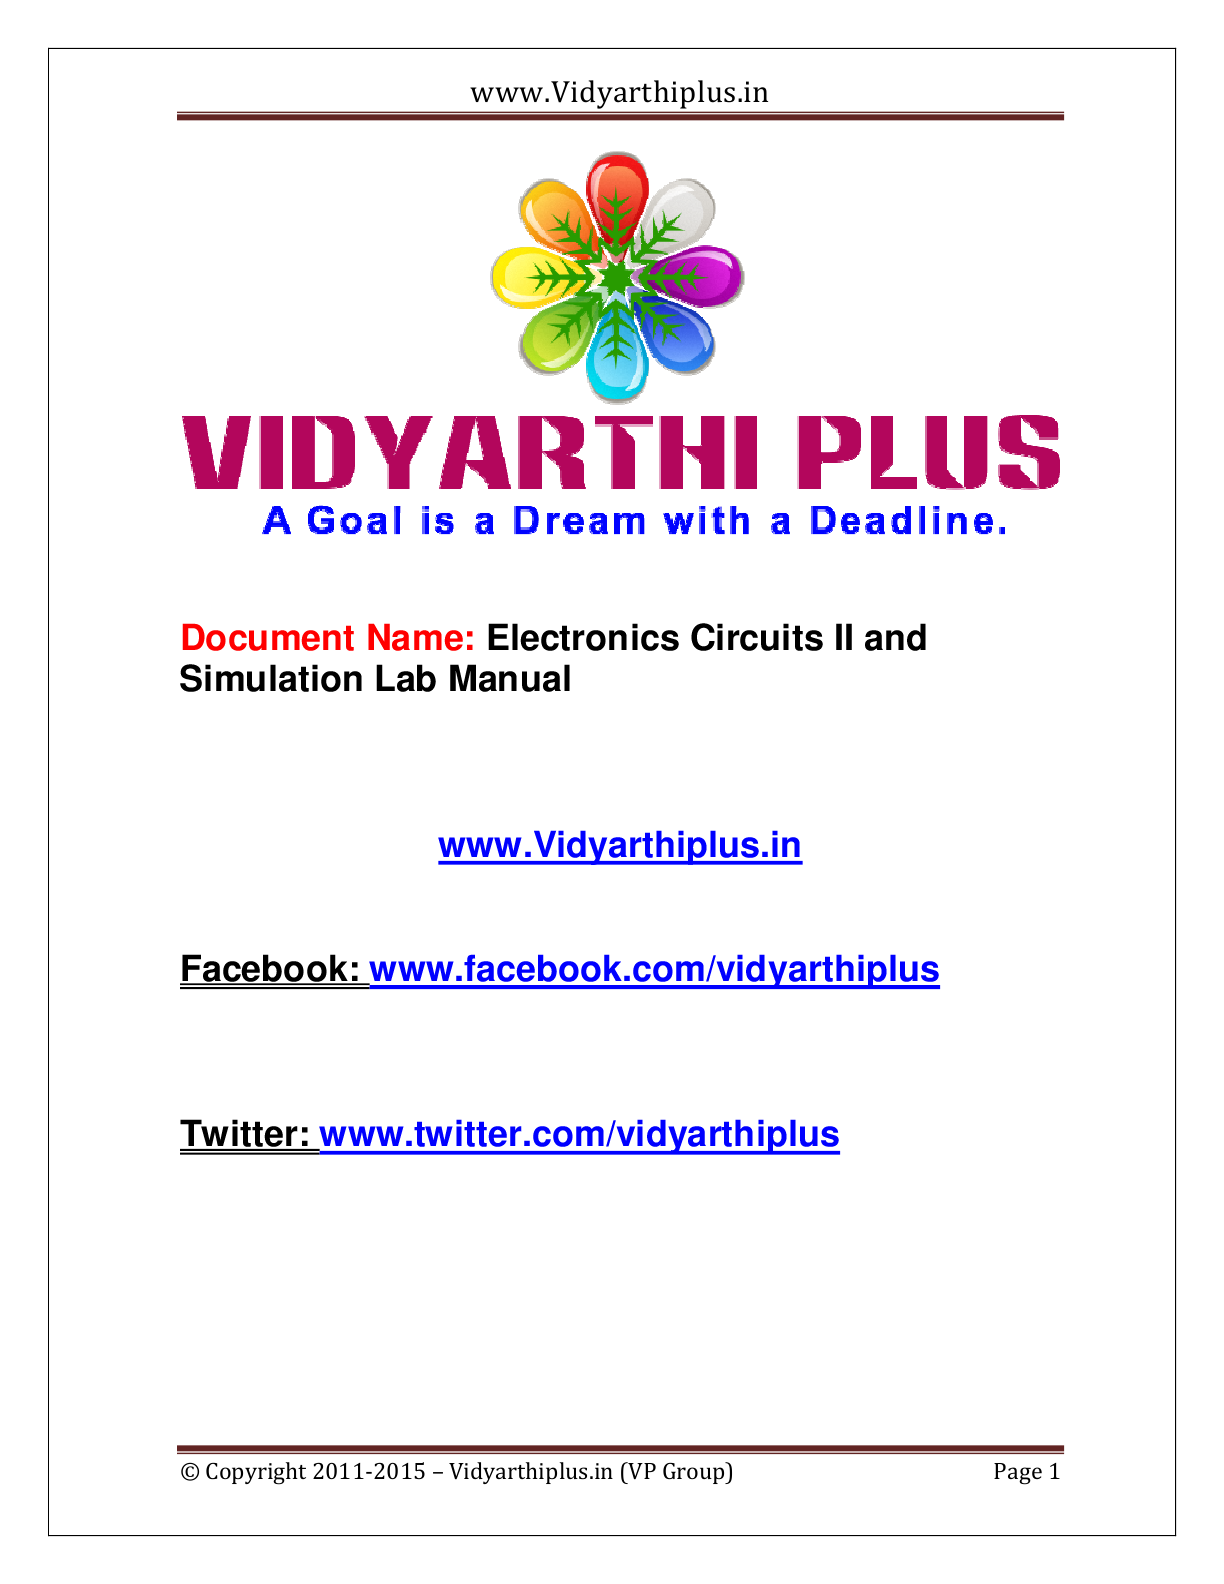 electronic circuits ii and simulation lab manual ~ vidyarthiplus (velectronic circuits ii and simulation lab manual